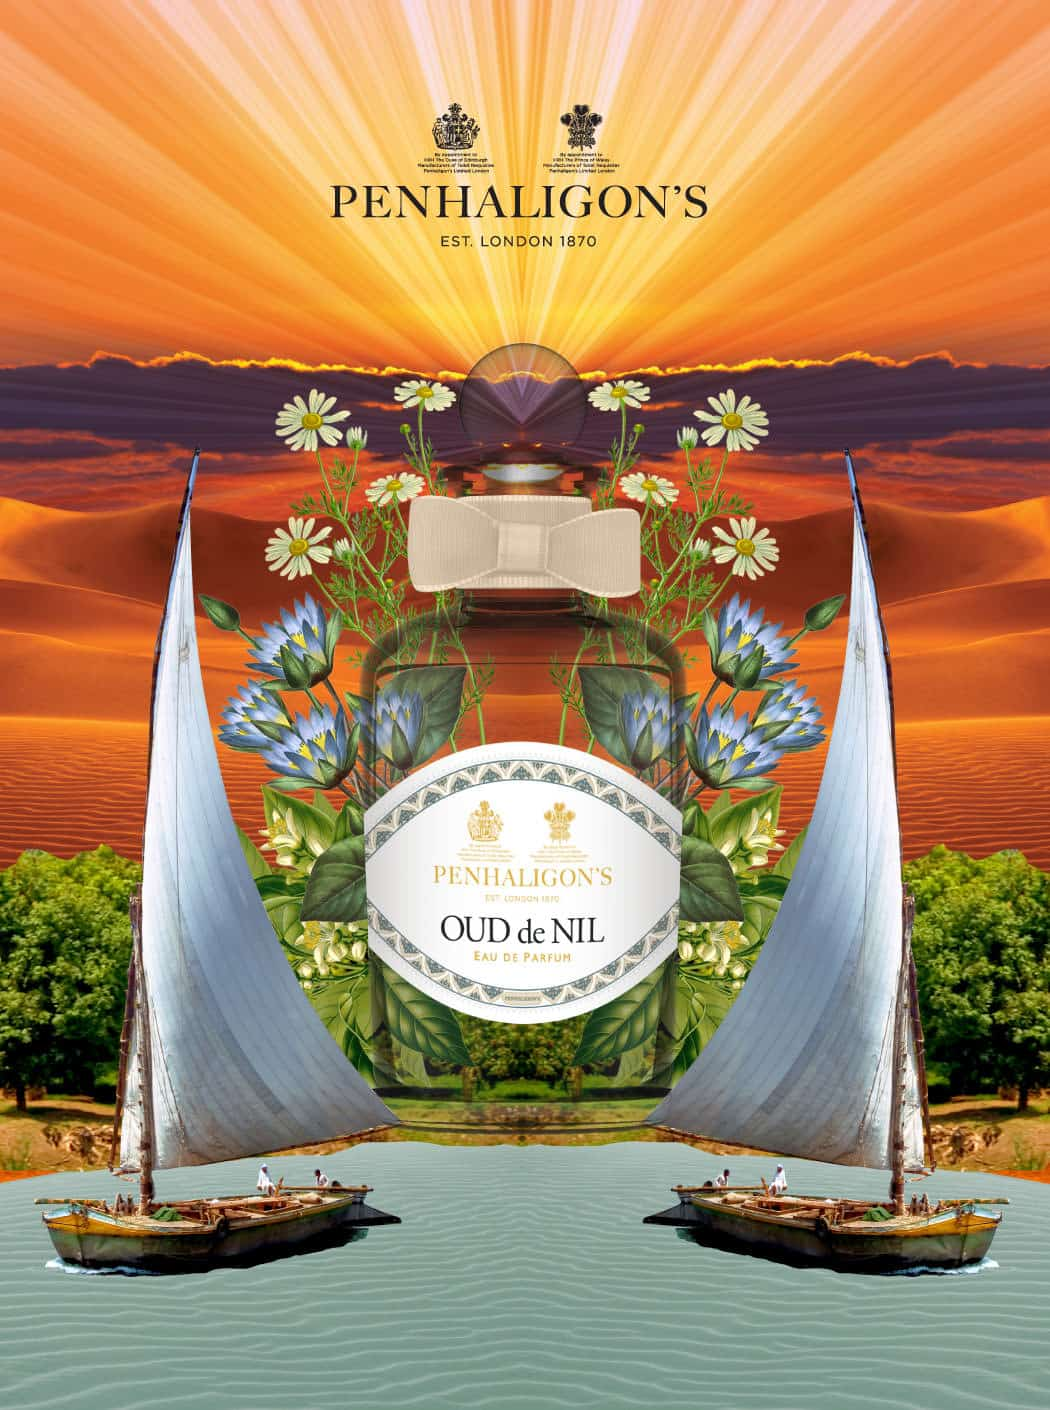 Penhaligons trade routes poster design